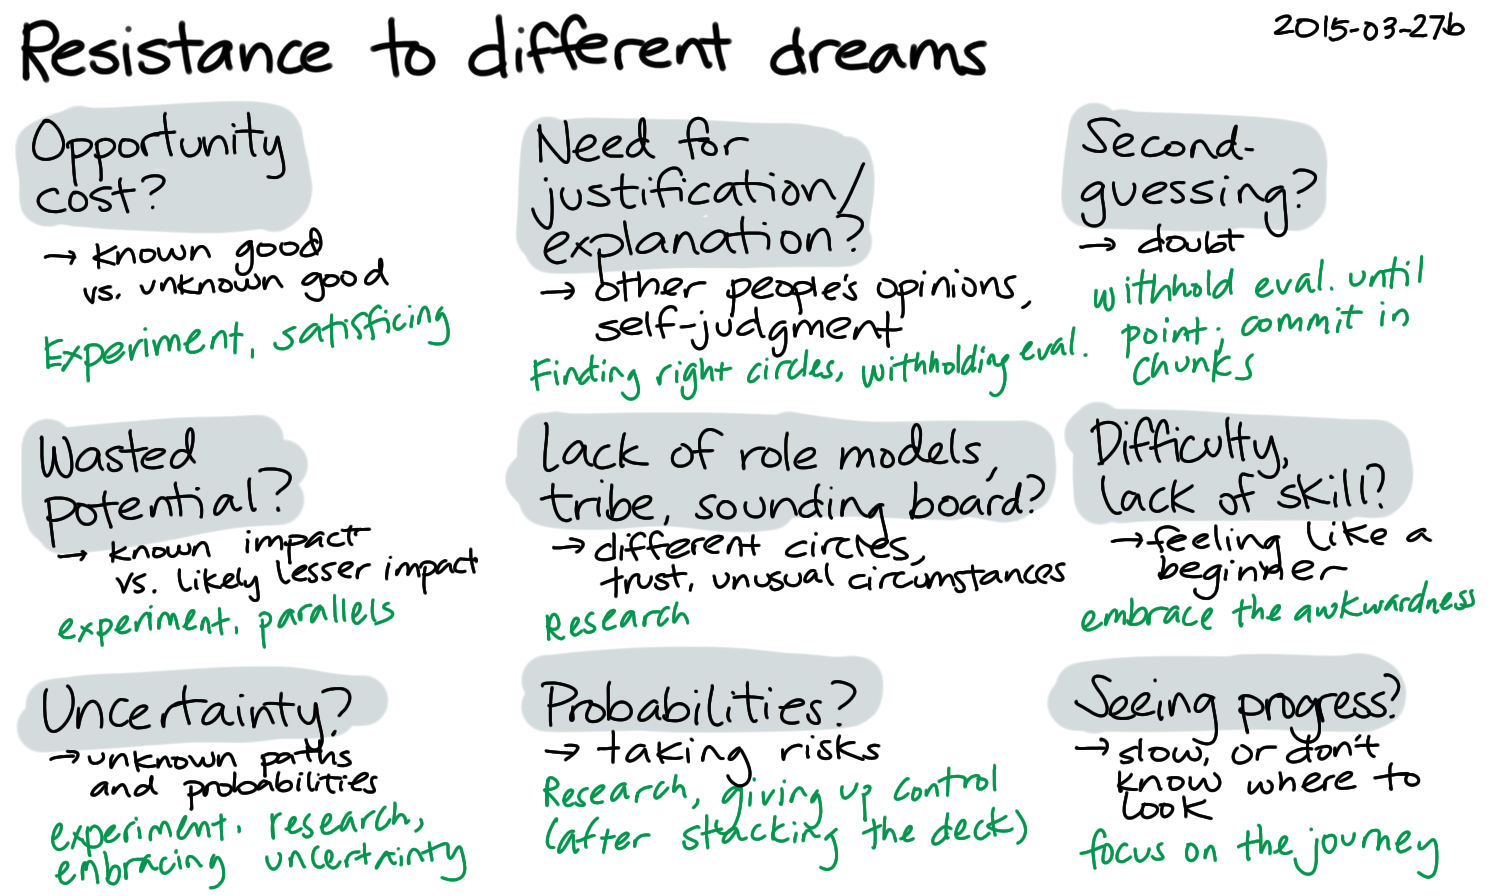 2015-03-27b Resistance to different dreams -- index card #resistance.png